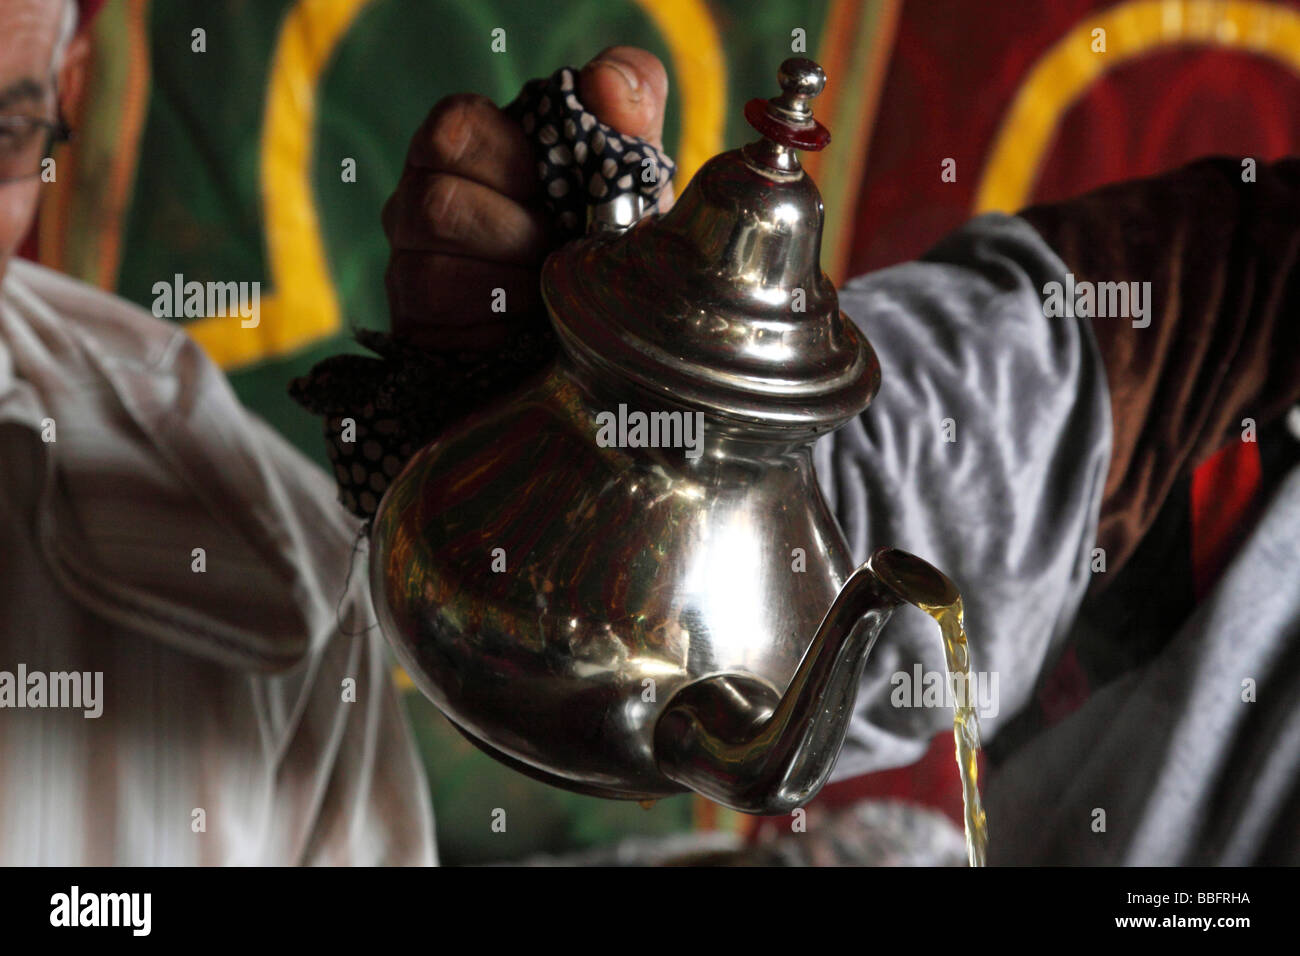 Africa, North Africa, Morocco, Meknes, Hand Pouring Tea - Stock Image